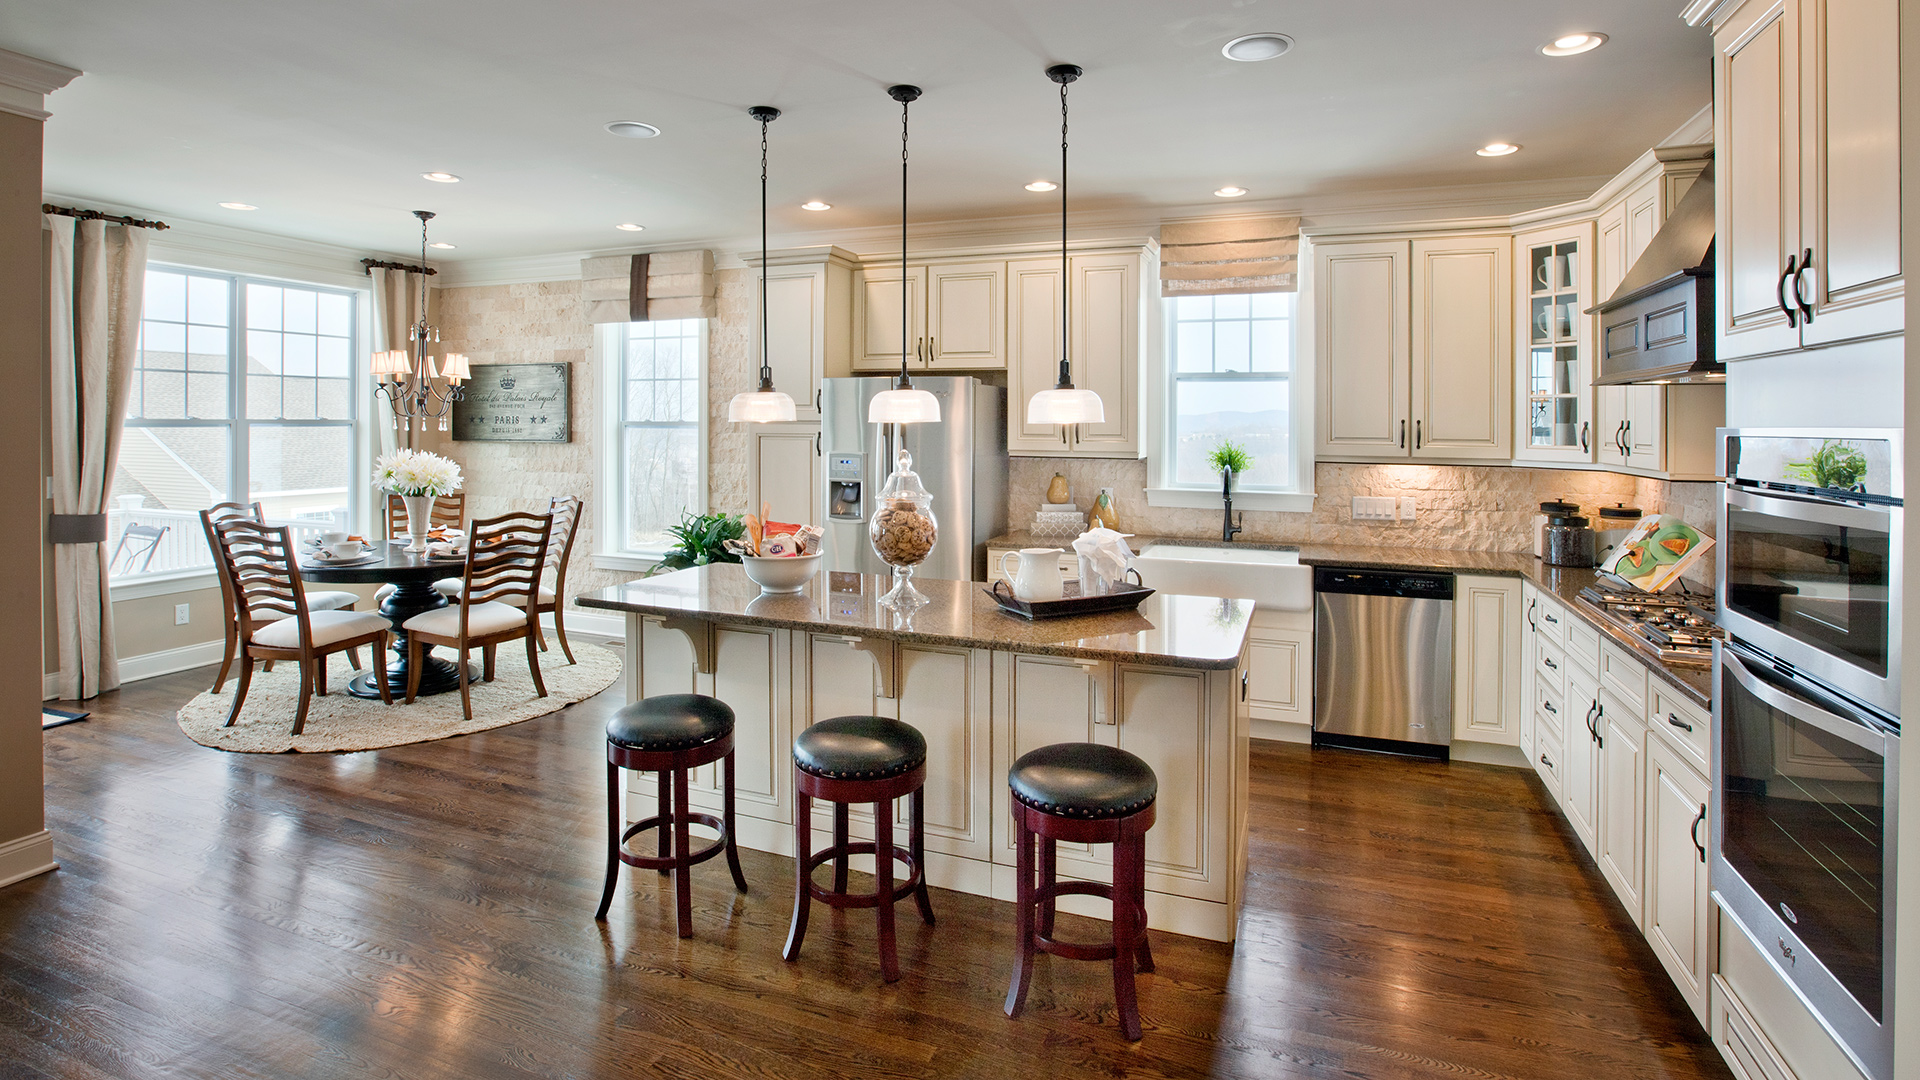 Kitchen cabinets danbury ct - Denton Rivington By Toll Brothers The Ridge Collection Danbury Ct